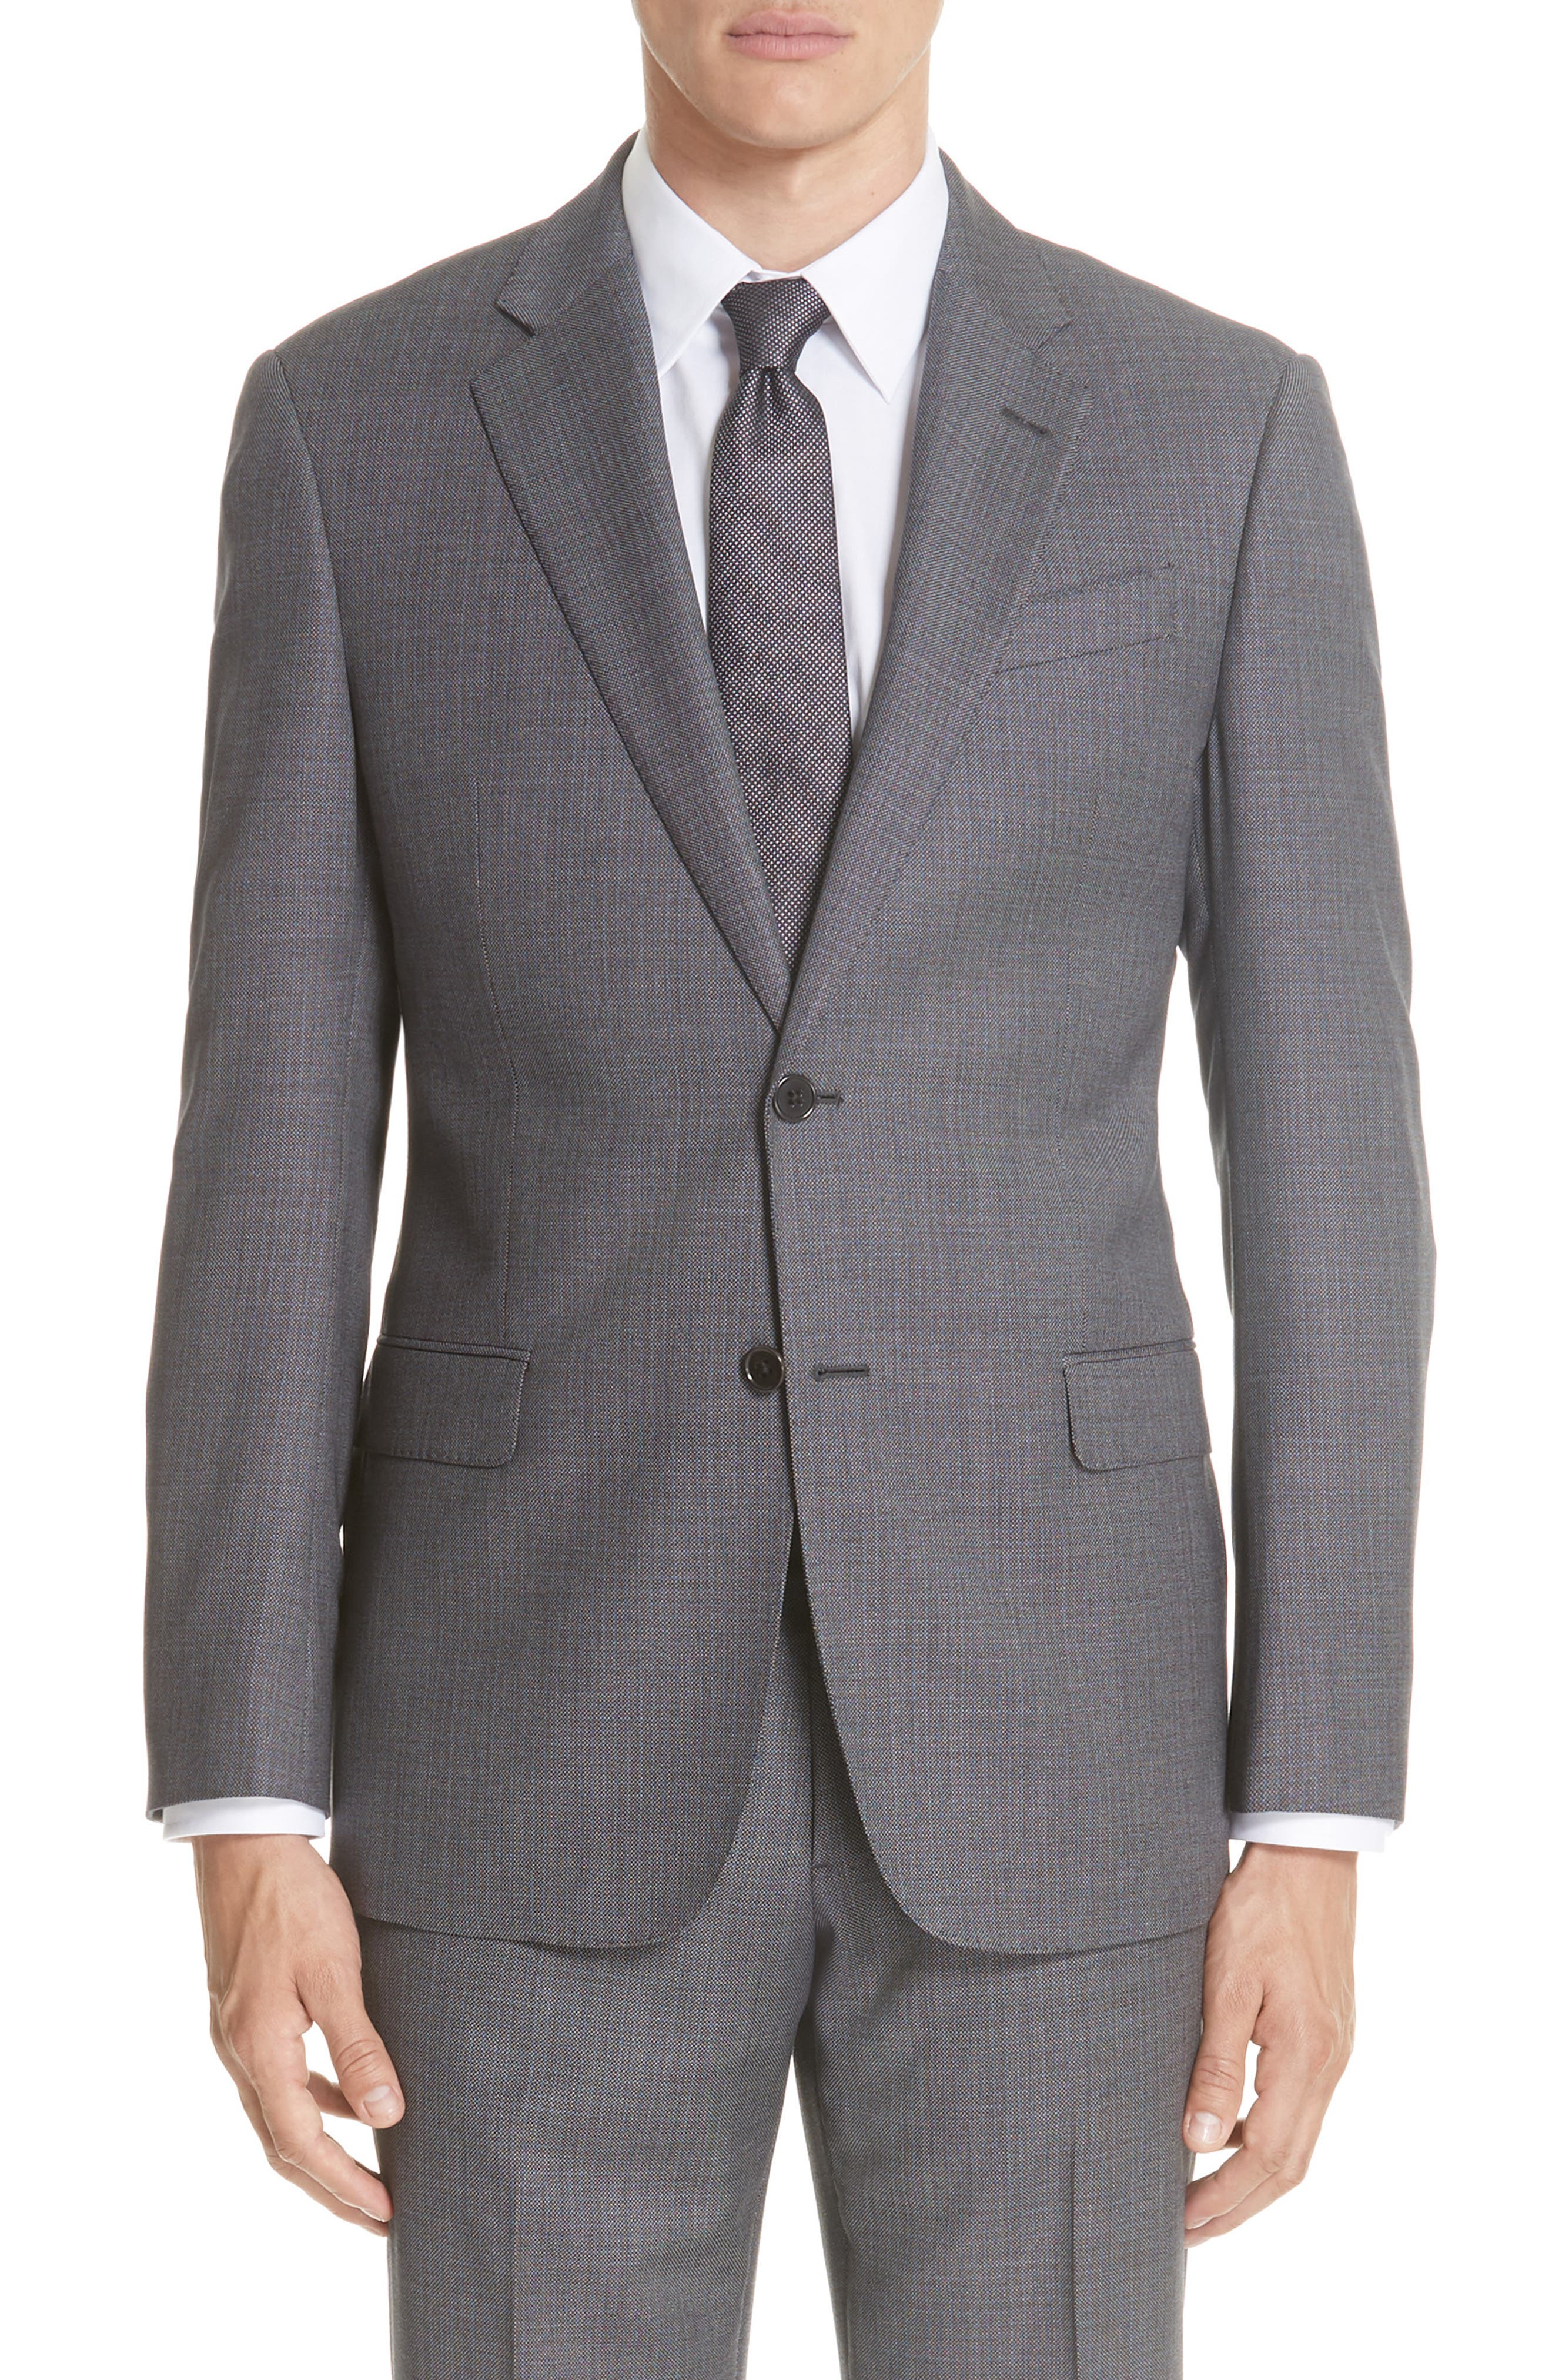 G-Line Trim Fit Bird's Eye Wool Suit,                             Alternate thumbnail 5, color,                             GREY/ LIGHT BLUE